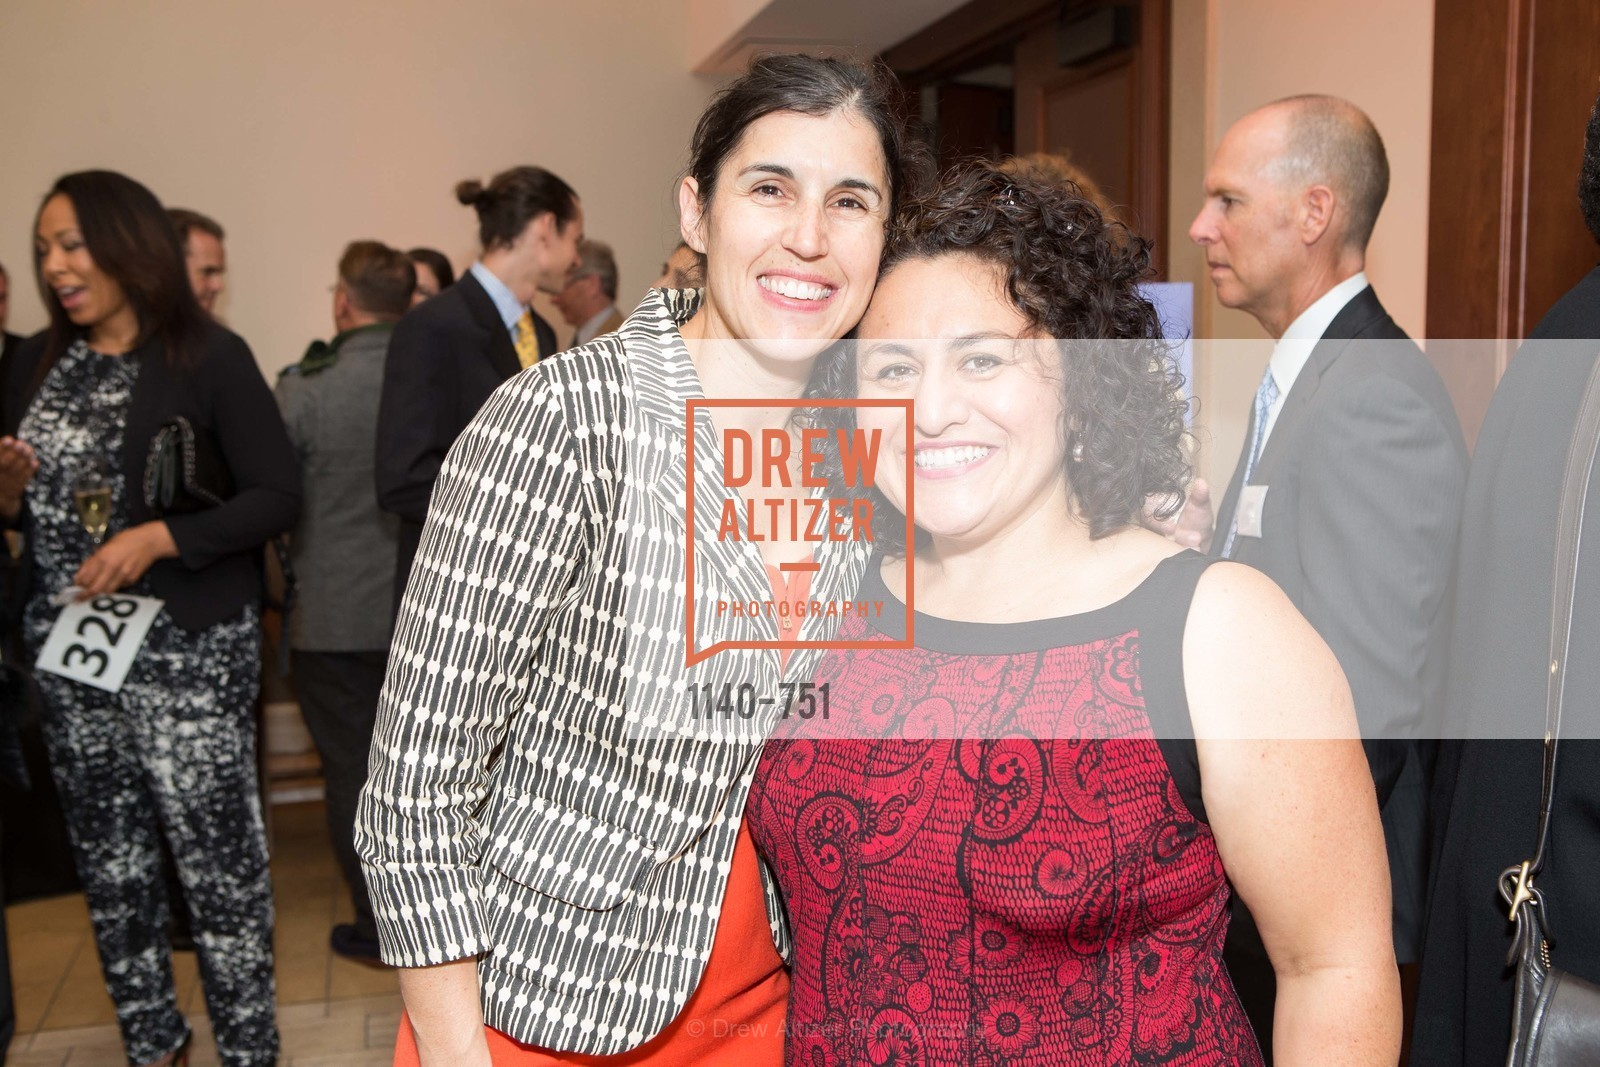 Rachel Baker, Maria Gracia Galvez Picon, CENTER FOR ENVIRONMENTAL HEALTH (CEH) 2015 Gala, US, May 28th, 2015,Drew Altizer, Drew Altizer Photography, full-service agency, private events, San Francisco photographer, photographer california